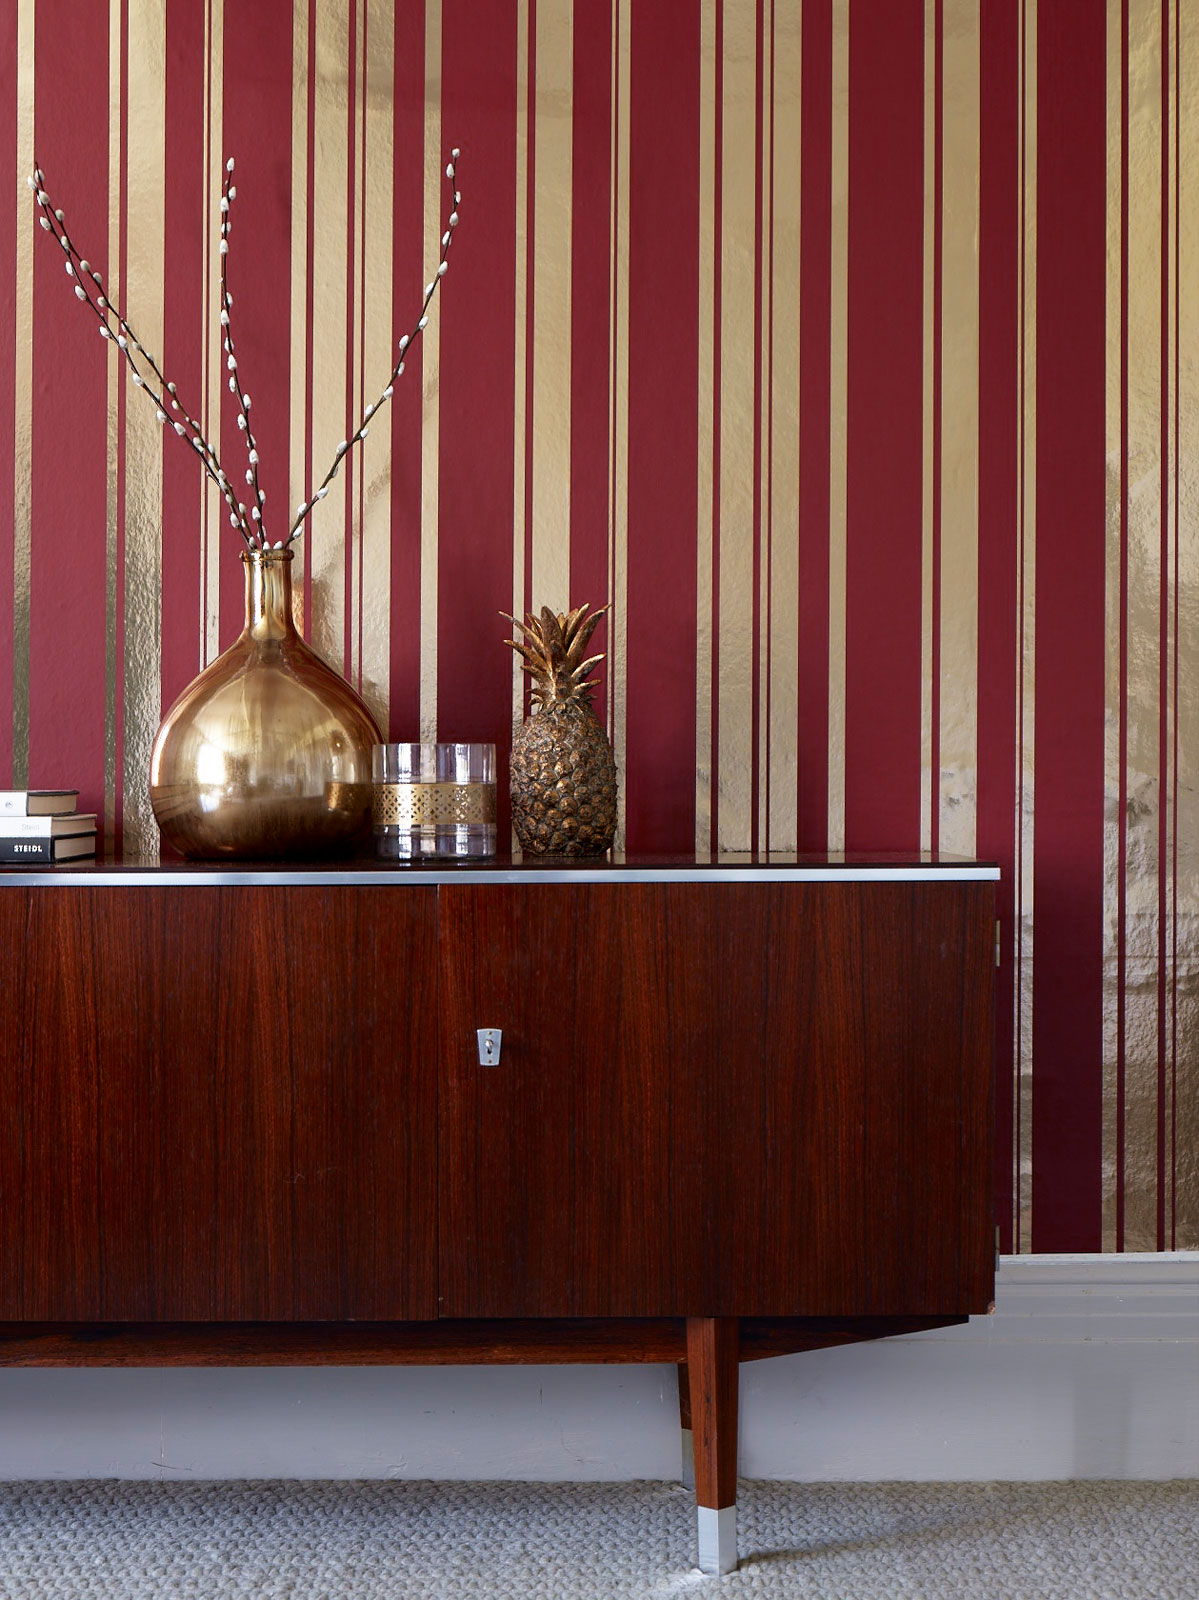 Foil stripe wallpaper from Wallpapersdirect. Image styled by Sophie Robinson.